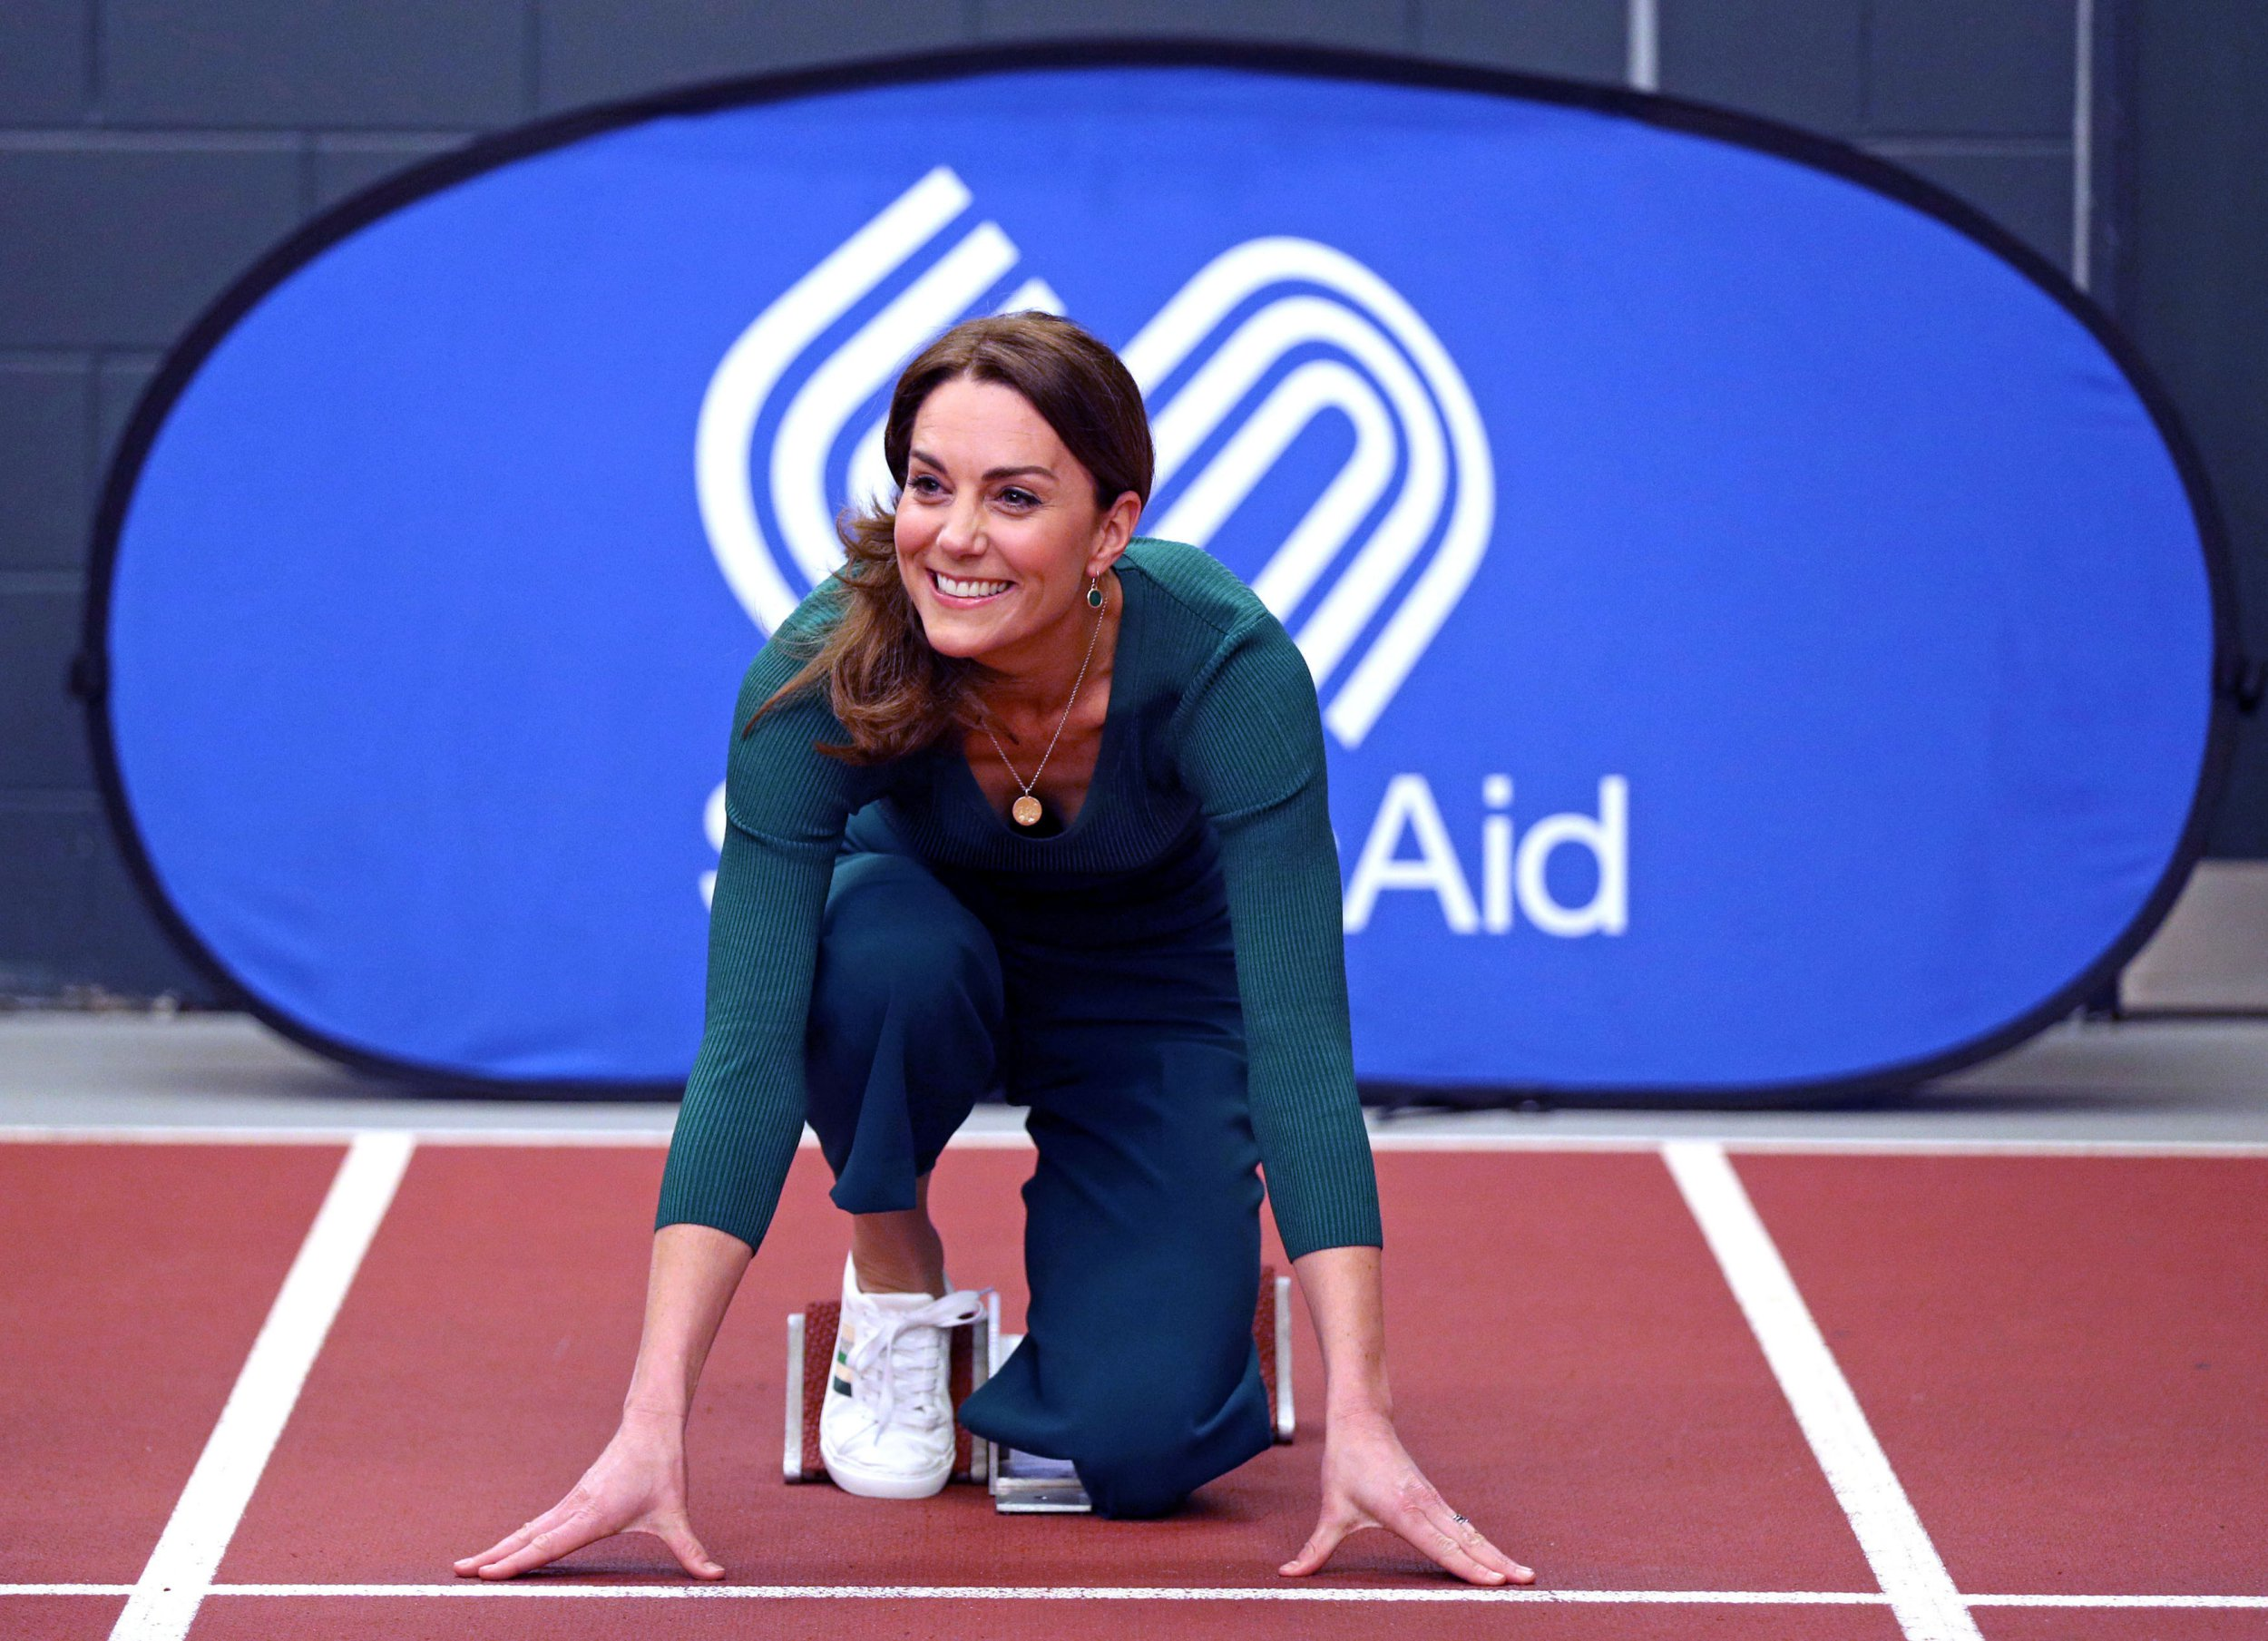 Kate Middleton wears £30 M\u0026S trainers